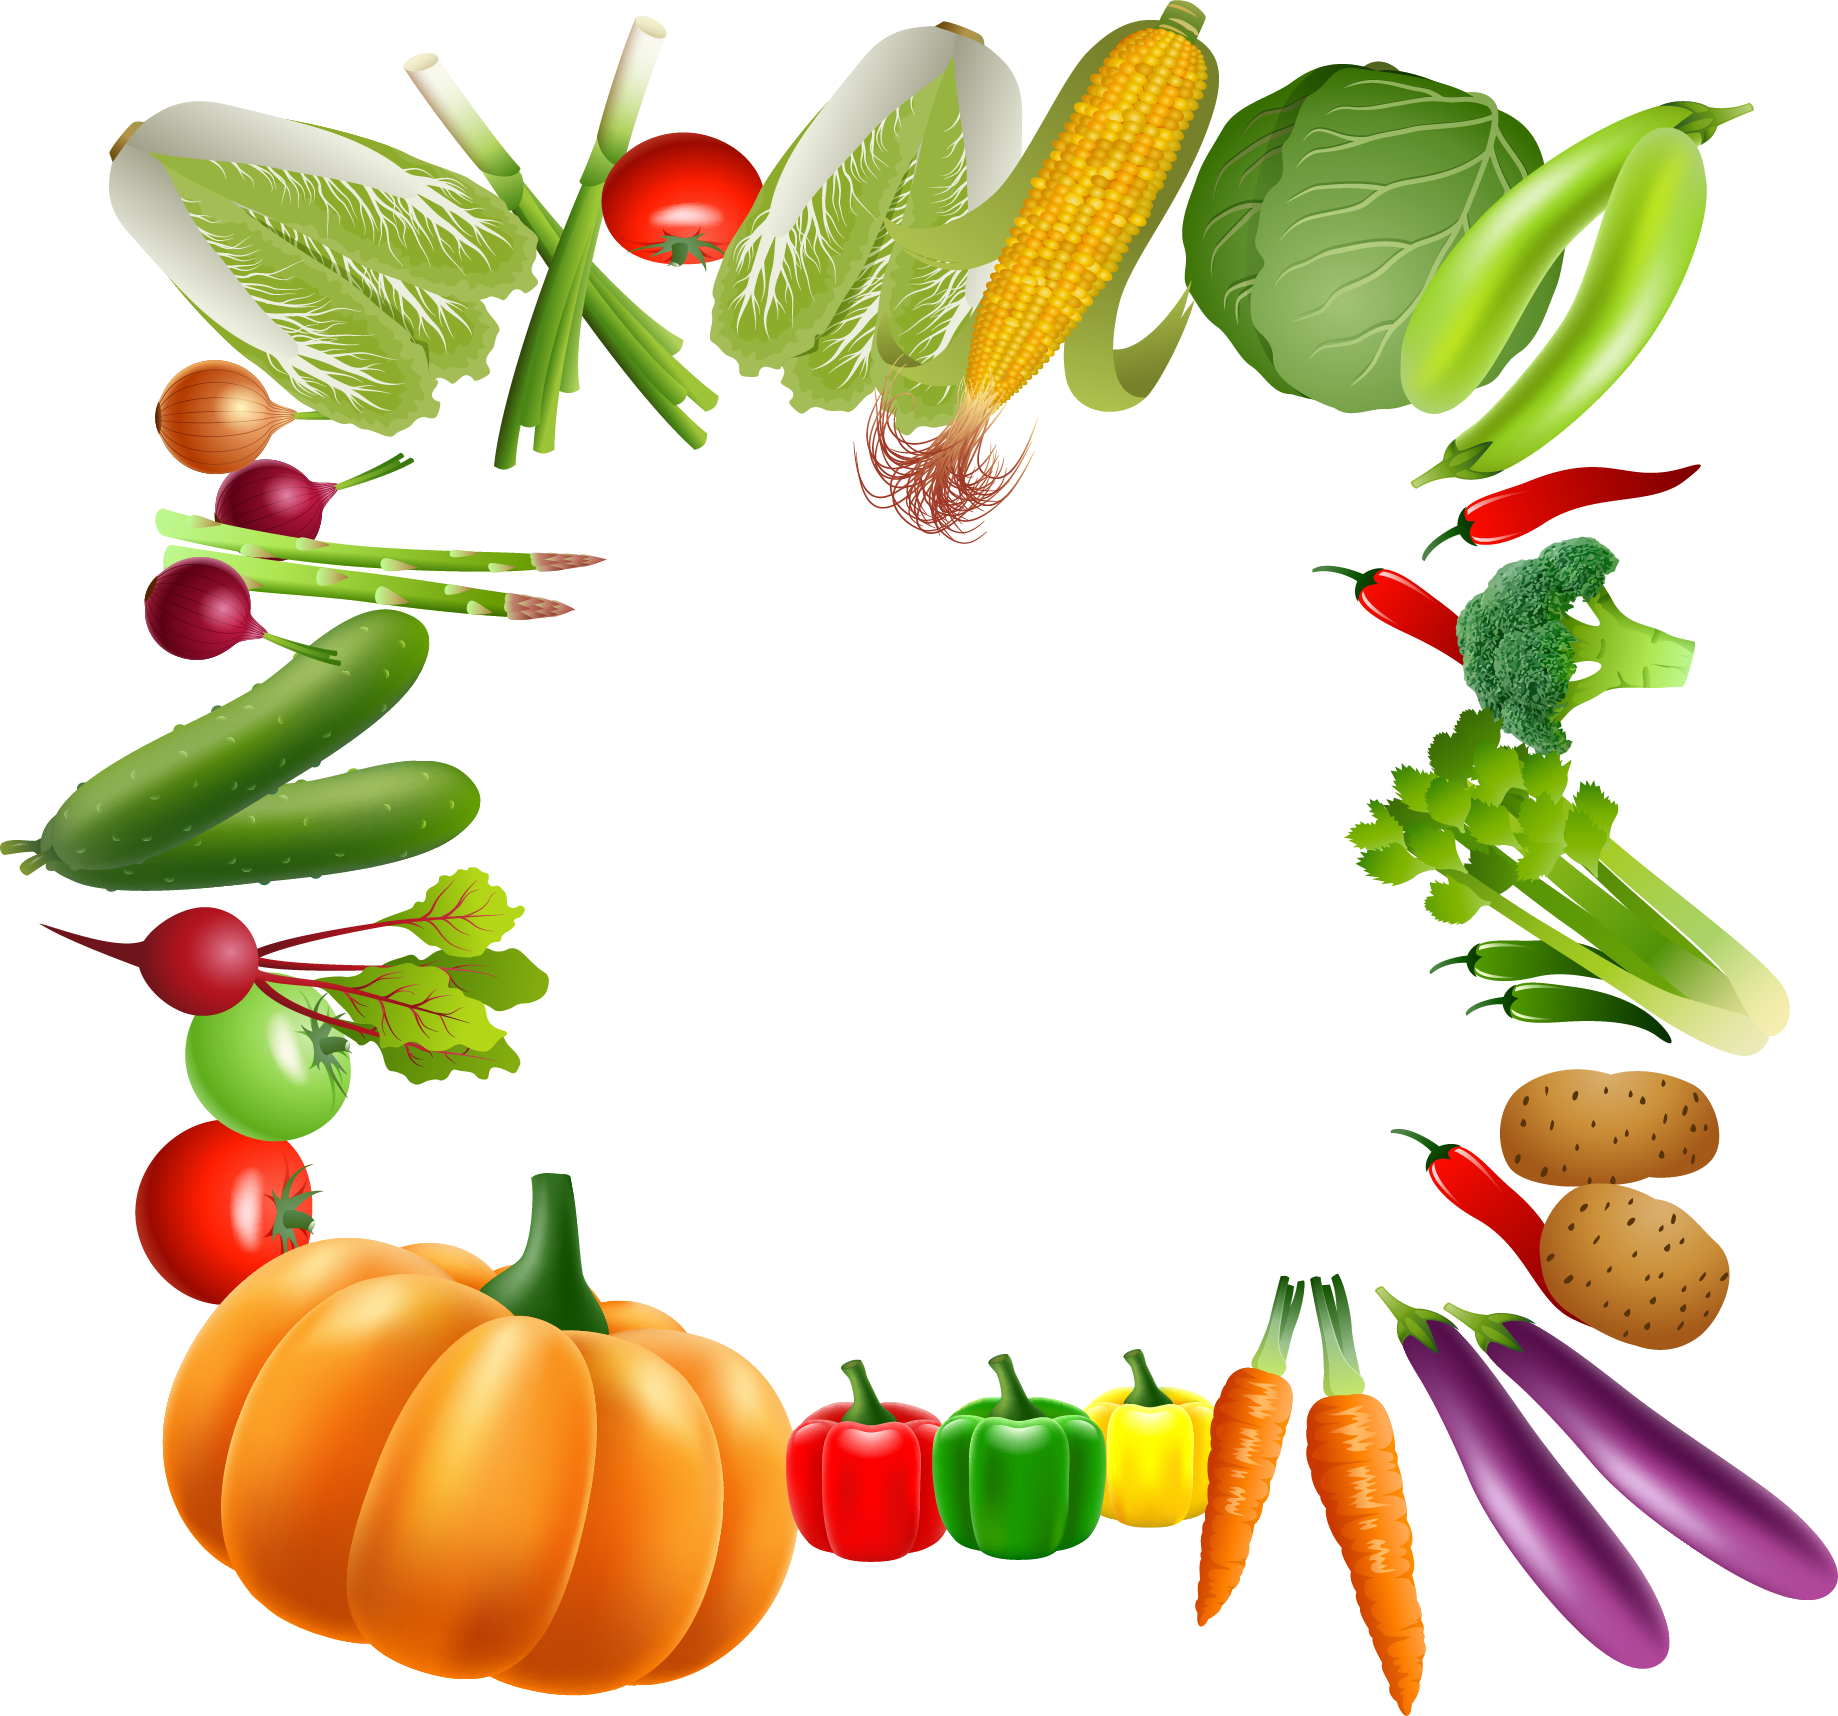 Vegetable vegetarian cuisine fruit. Fruits clipart borders